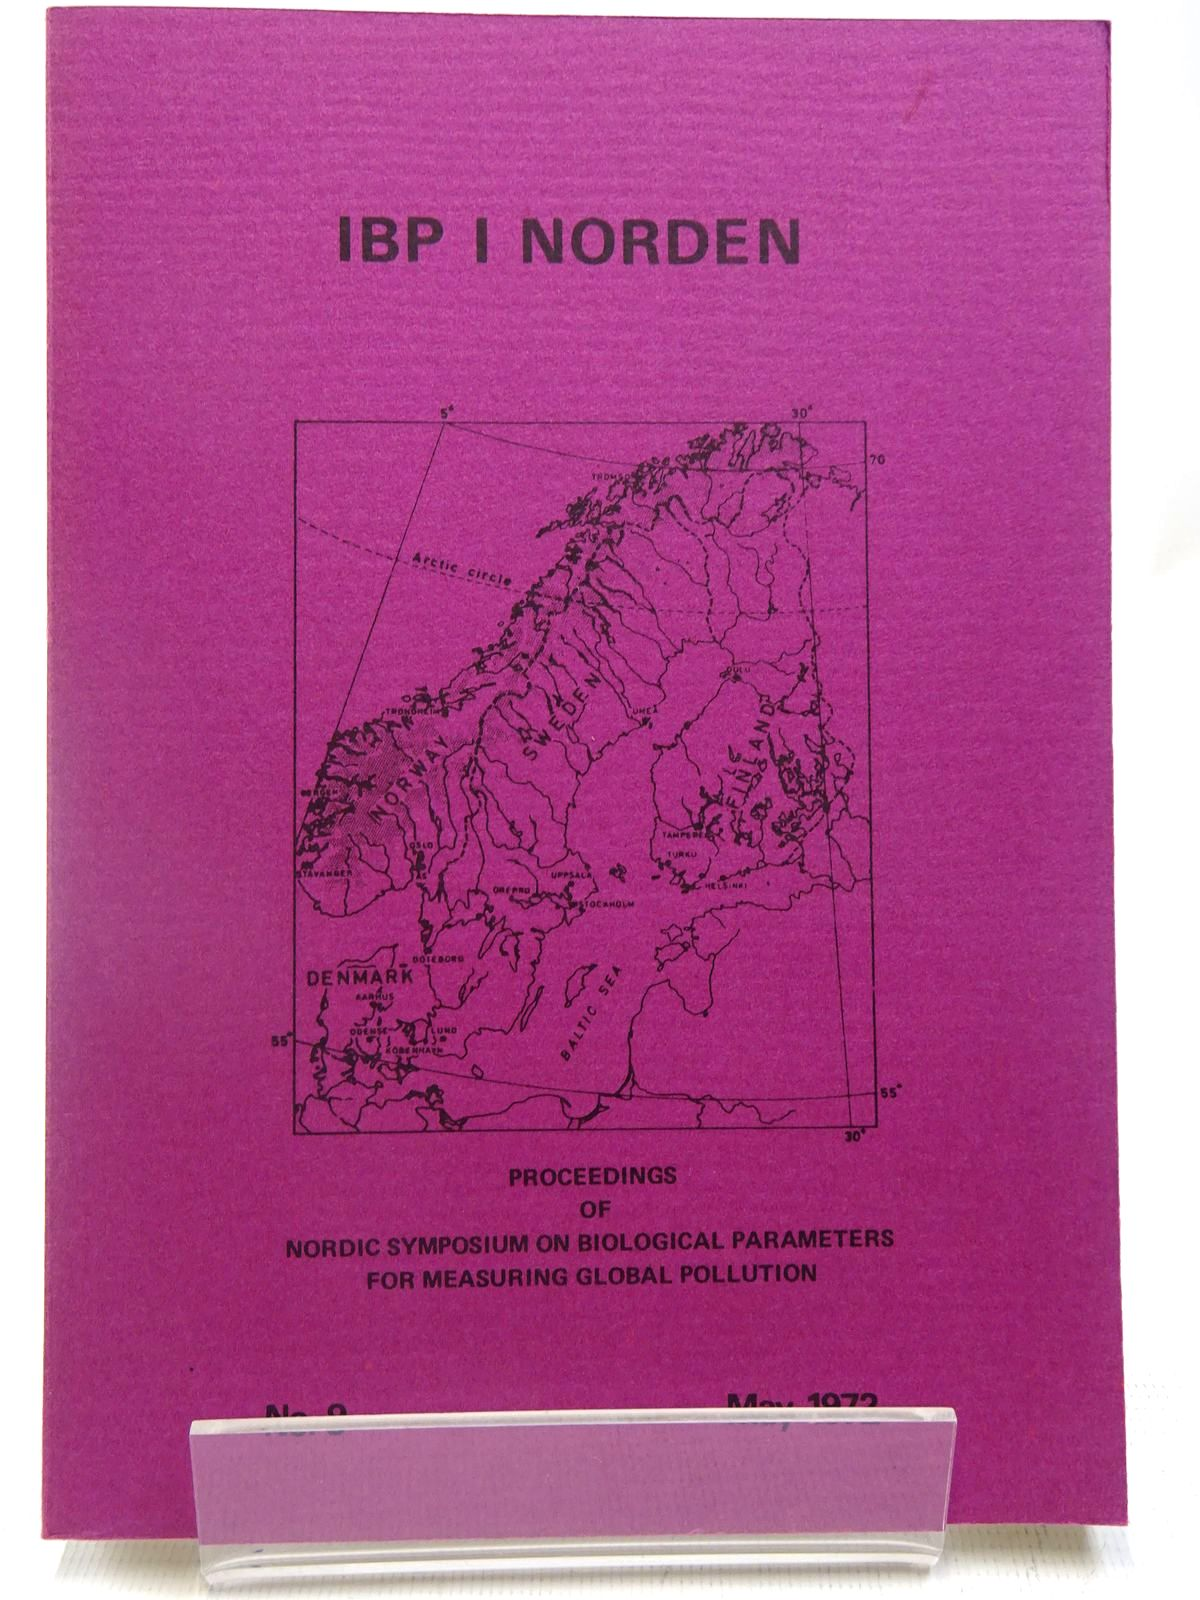 Photo of IBP I NORDEN No. 9 MAY 1972 written by Vik, Rolf Jonsson, Sten et al, published by Scandinavian National Committees Of The Internation Biology Programme (STOCK CODE: 2127991)  for sale by Stella & Rose's Books